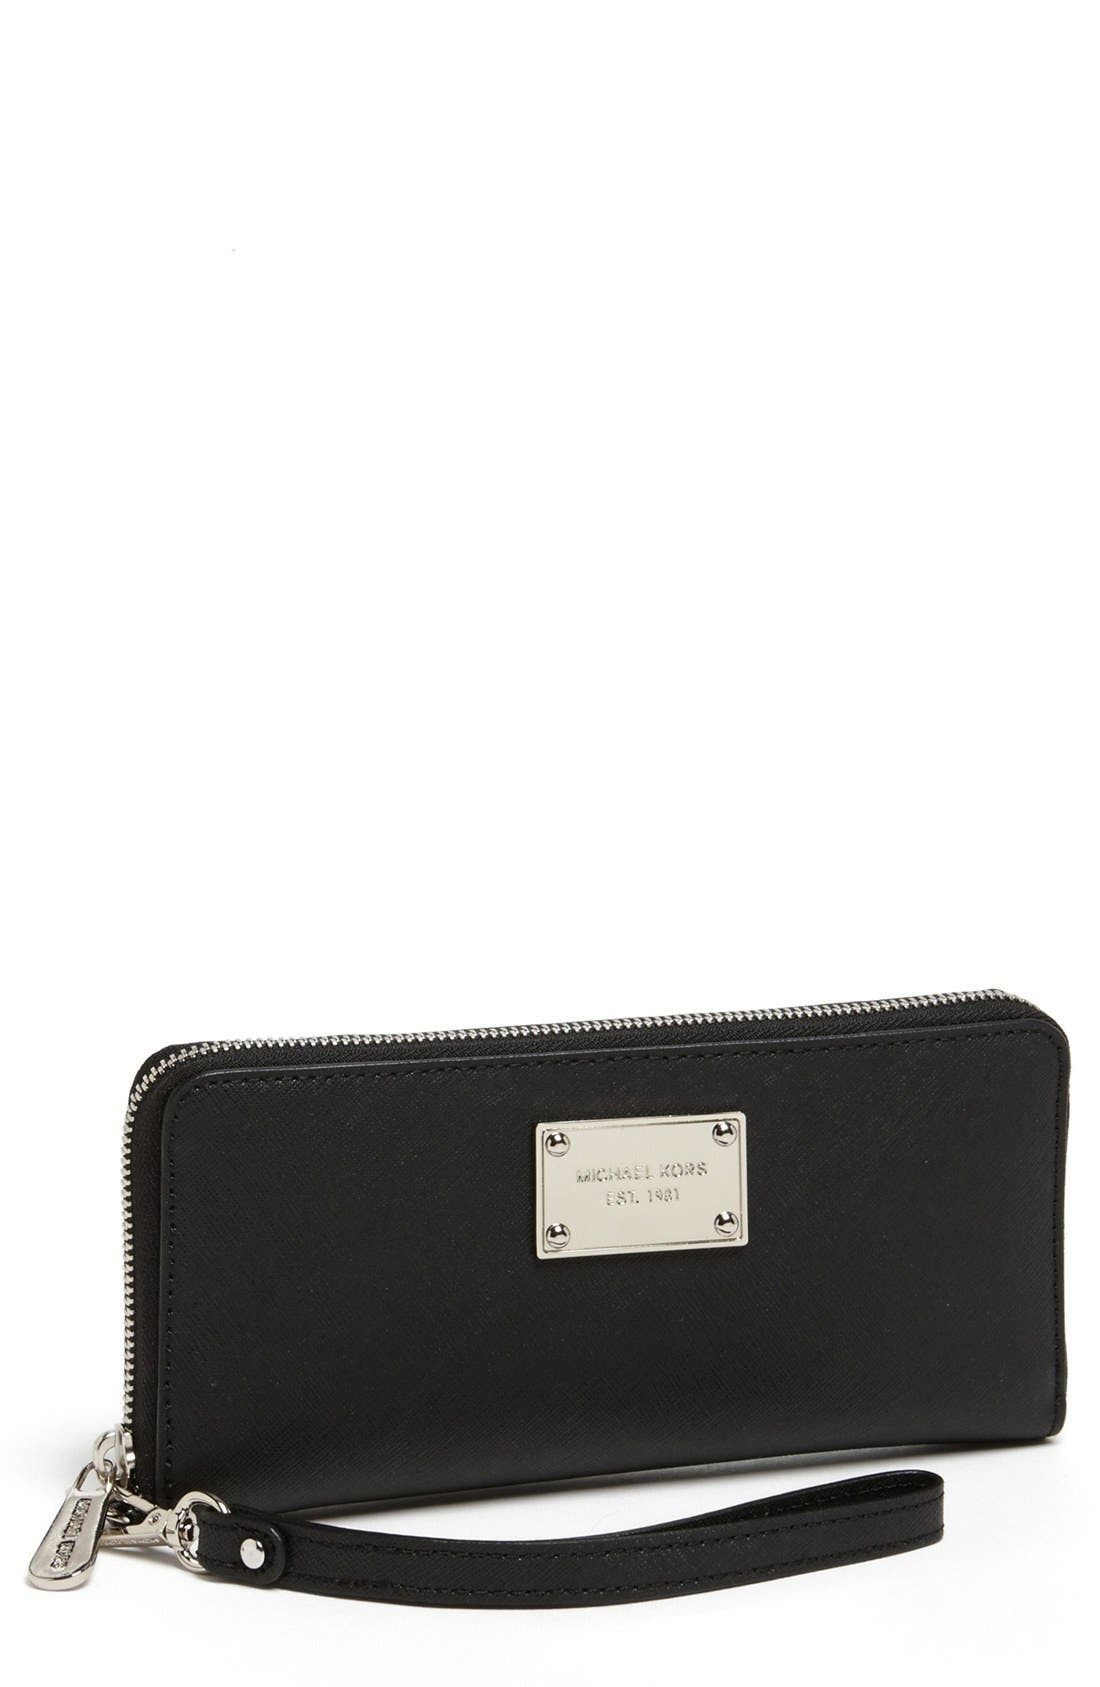 Alternate Image 1 Selected - MICHAEL Michael Kors 'Tech Continental' Leather Wallet